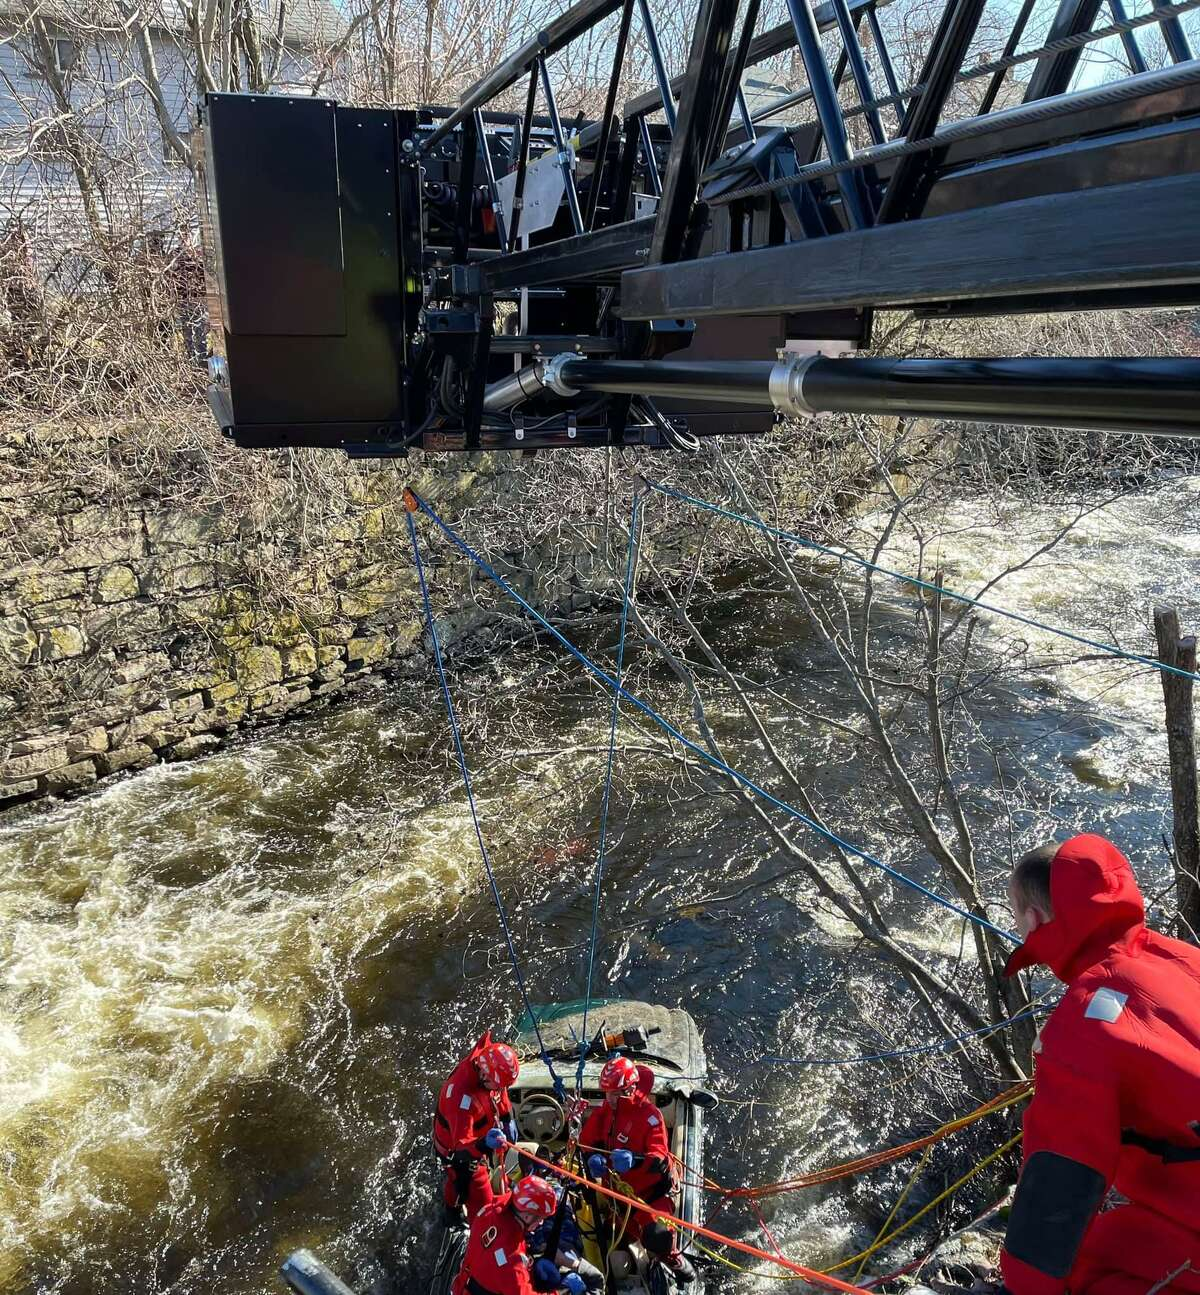 Crews on scene for a technical rescue at the File Mile River in Killingly, Conn., on Saturday, Jan. 9, 2021.